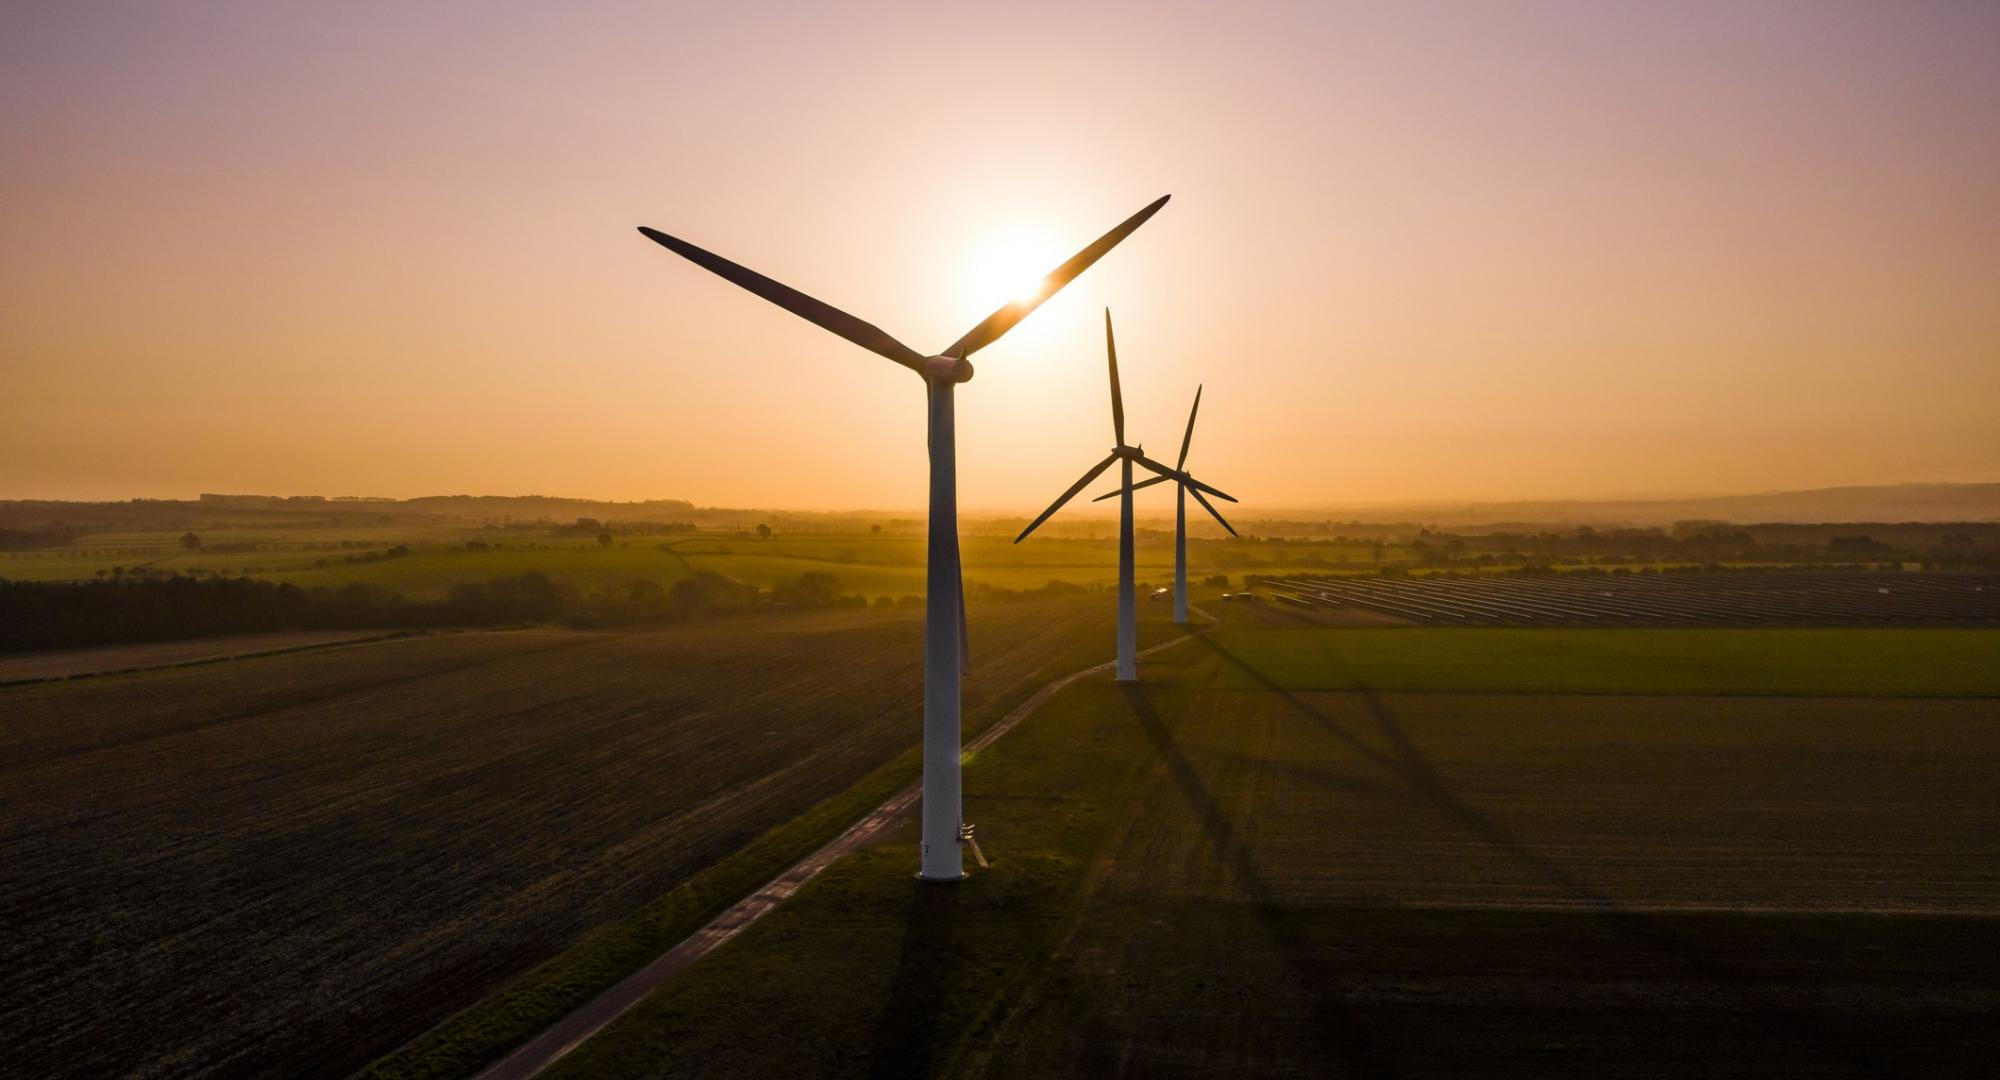 Plans to make the UK world leader in green energy announced